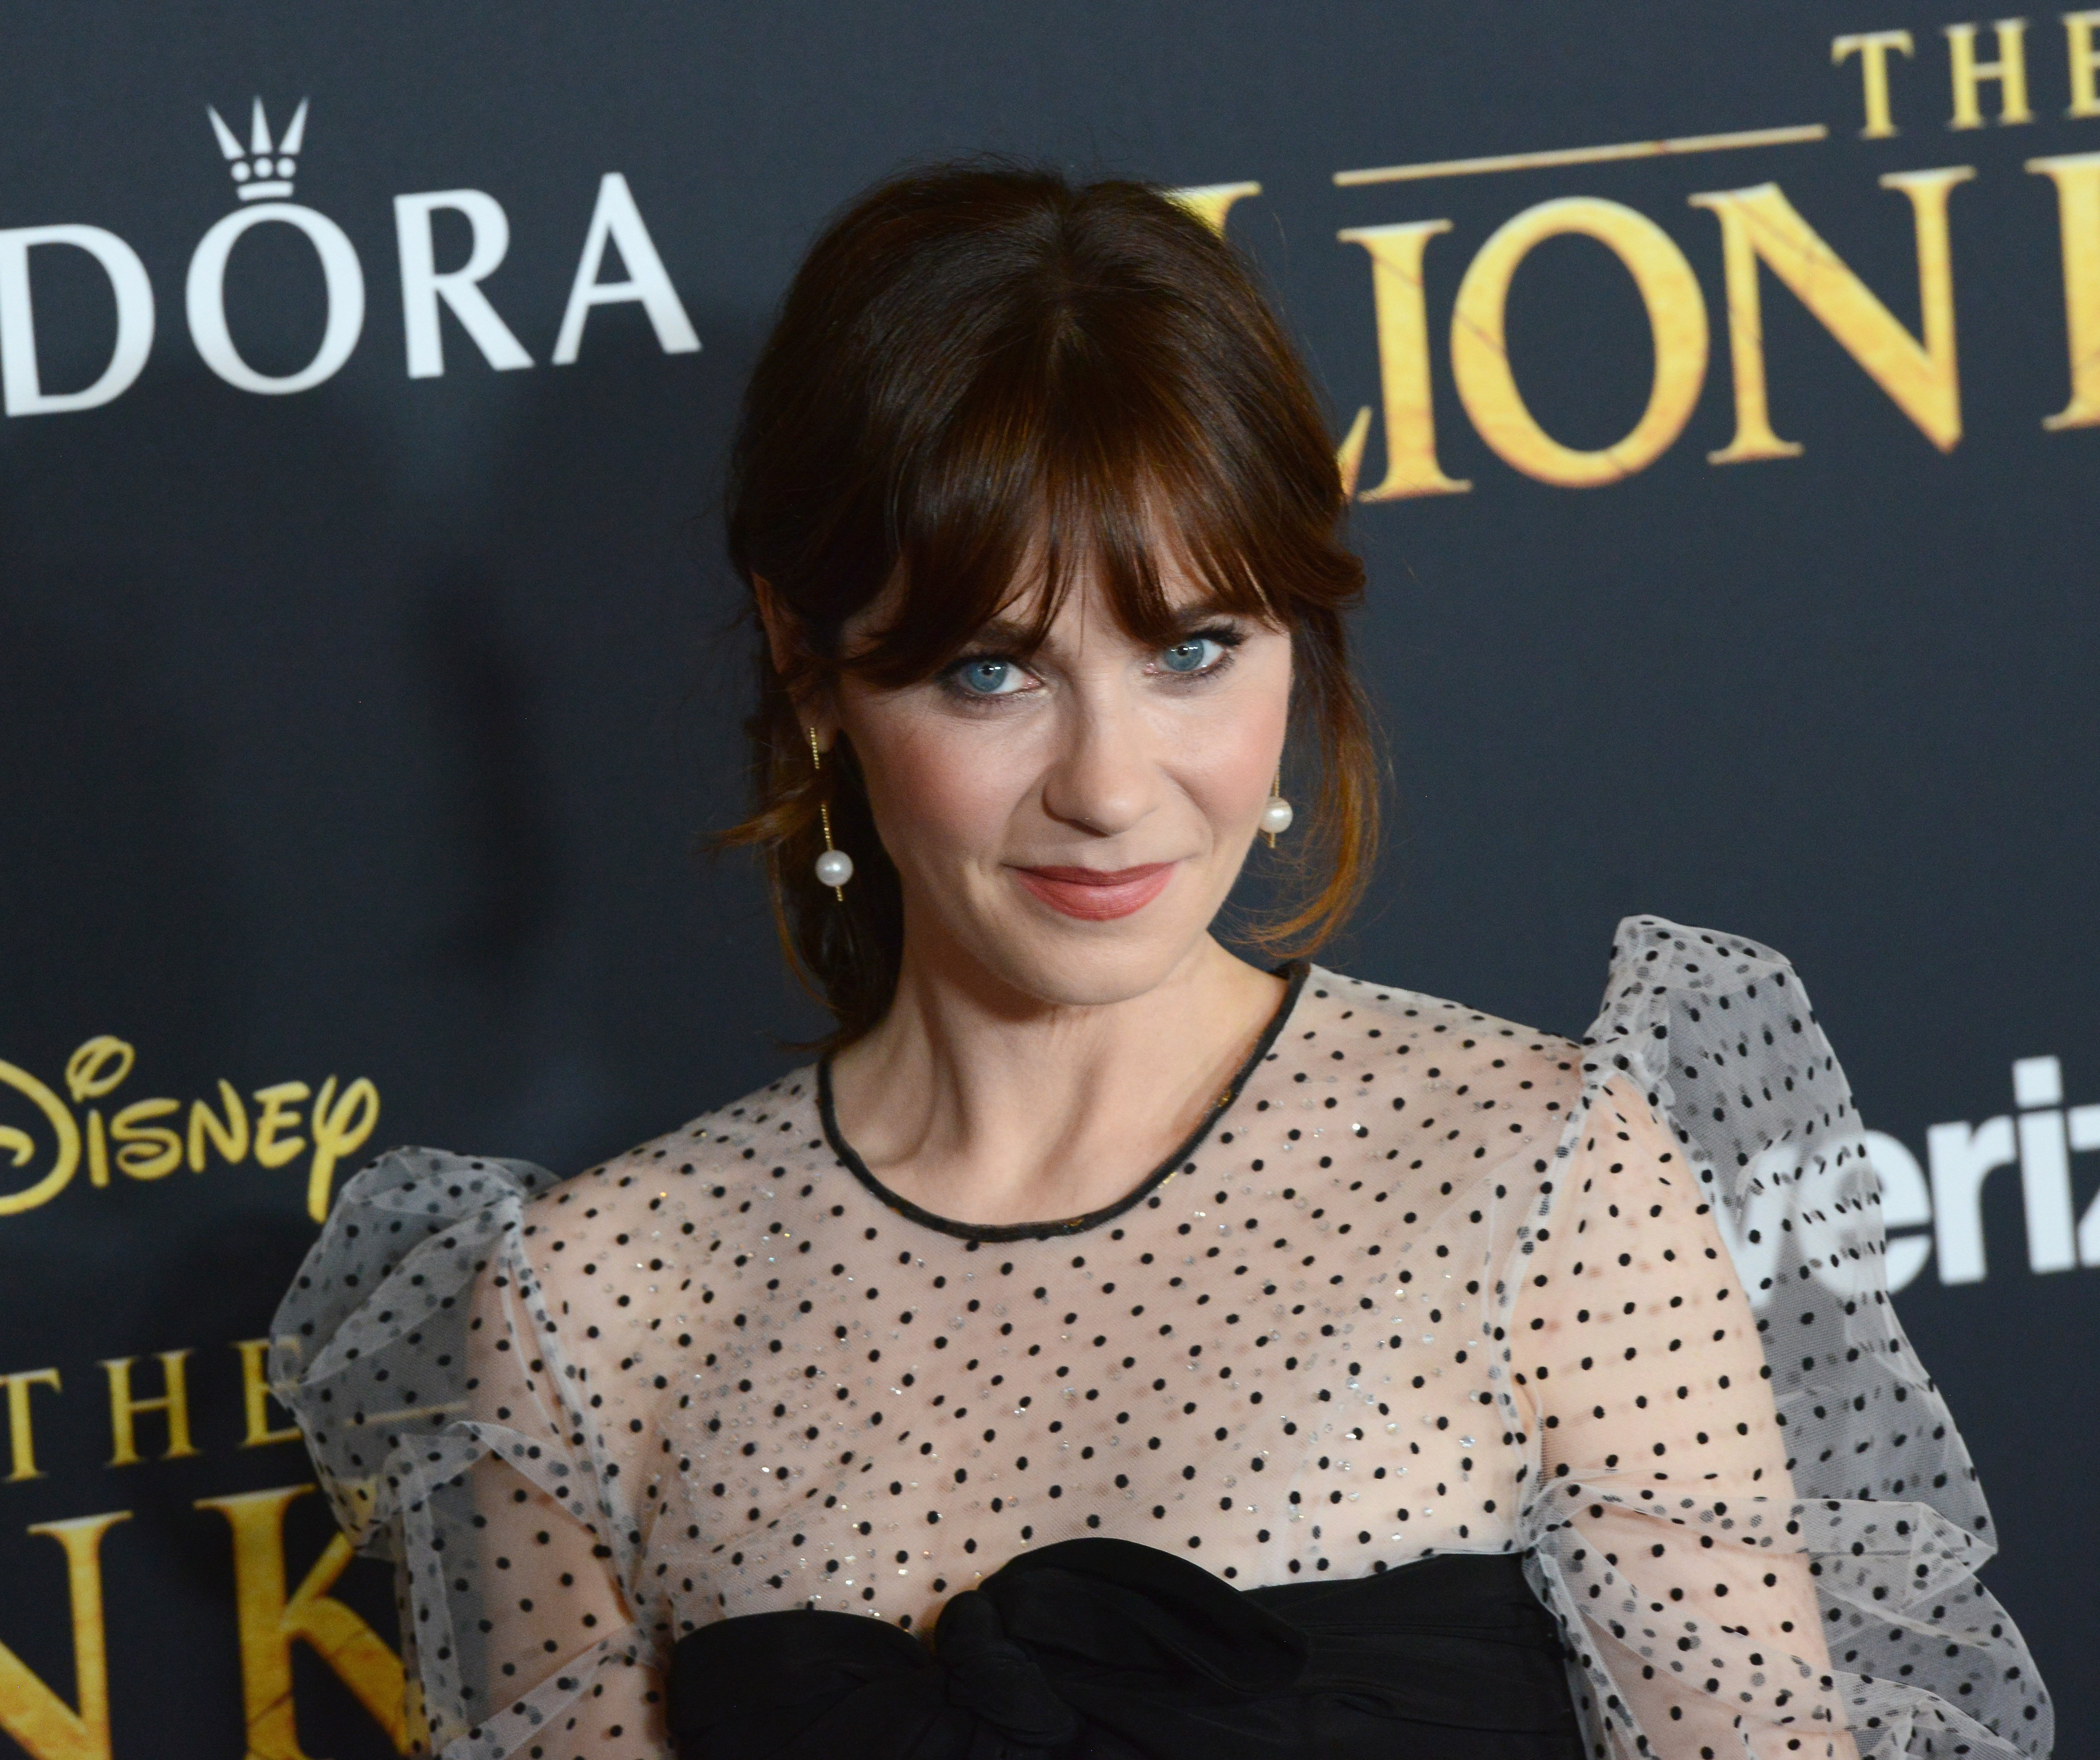 """Zooey Deschanel attends """"The Lion King"""" premiere at Dolby Theatre on July 9, 2019, in Hollywood, California. 